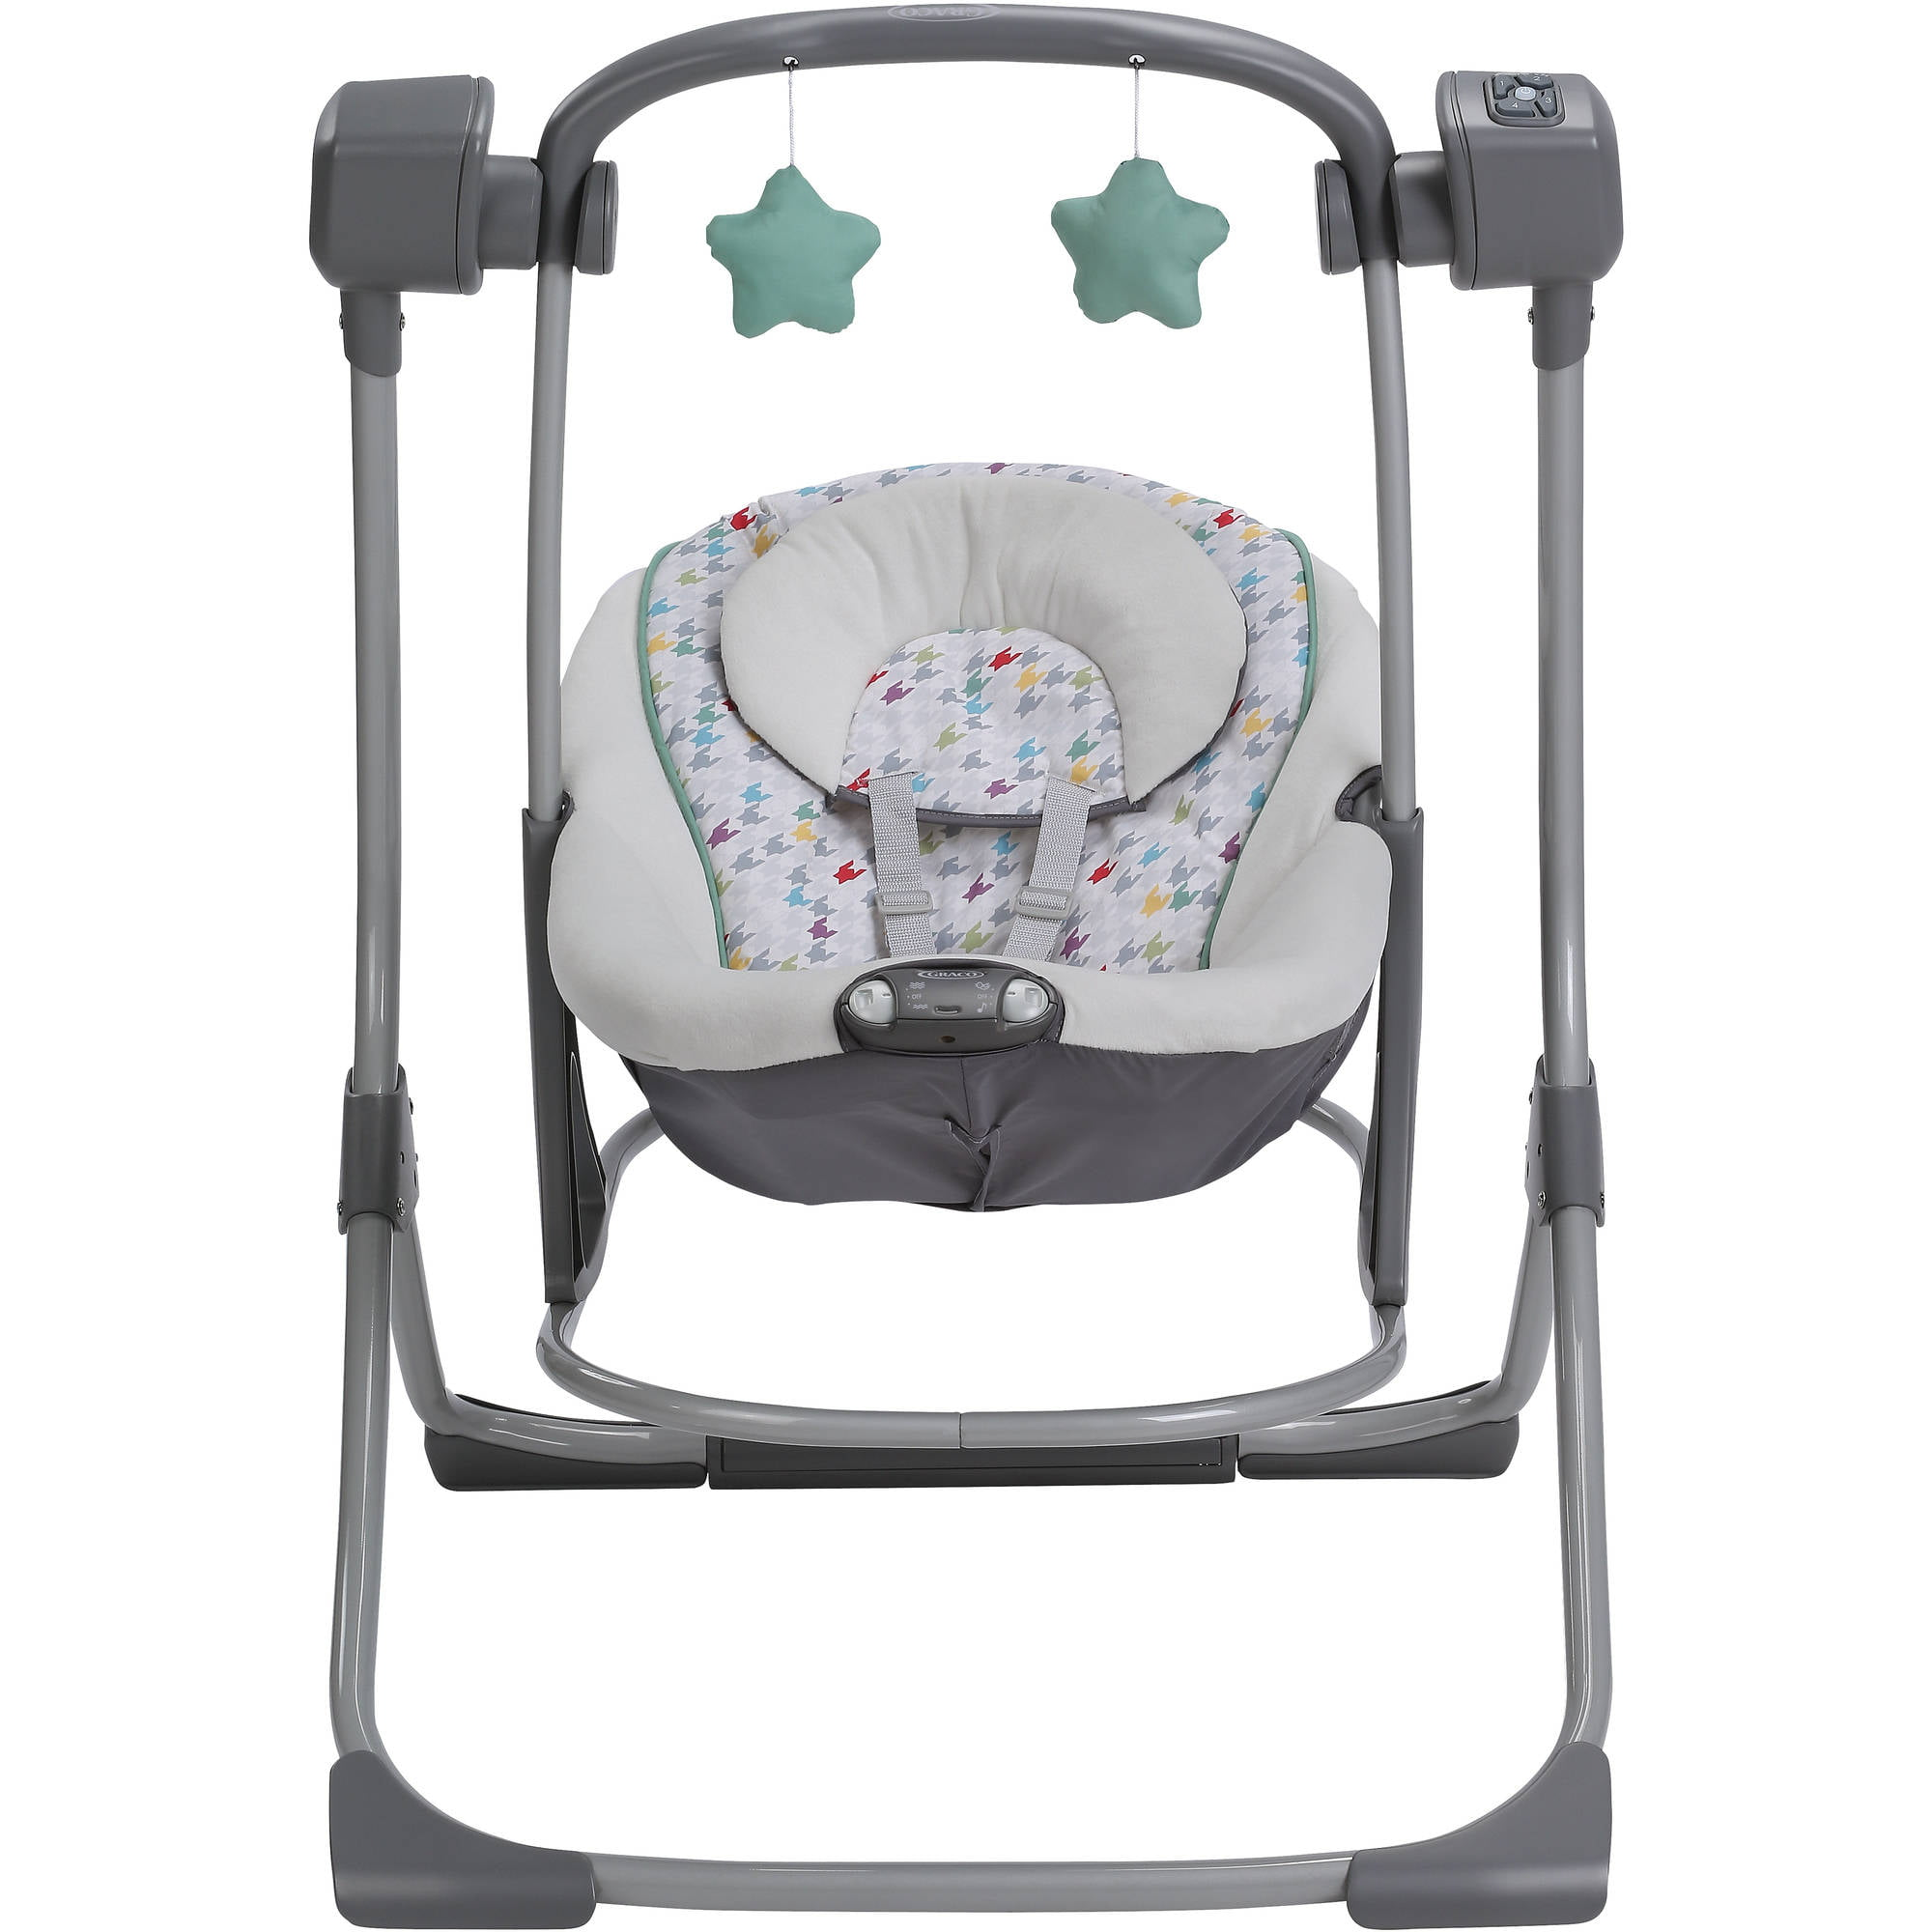 b8bcccf839ad Graco Cozy Duet Baby Swing and Rocker